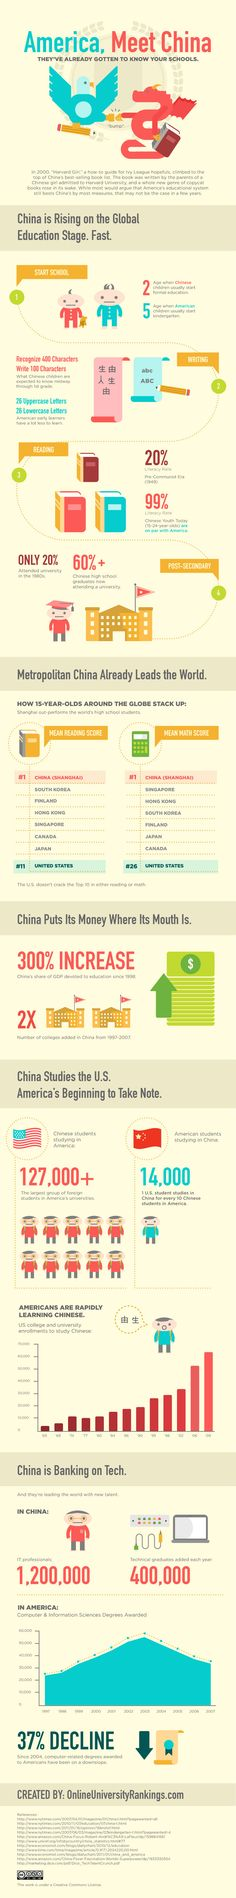 The growth of education in China [infographic] - Holy Kaw!